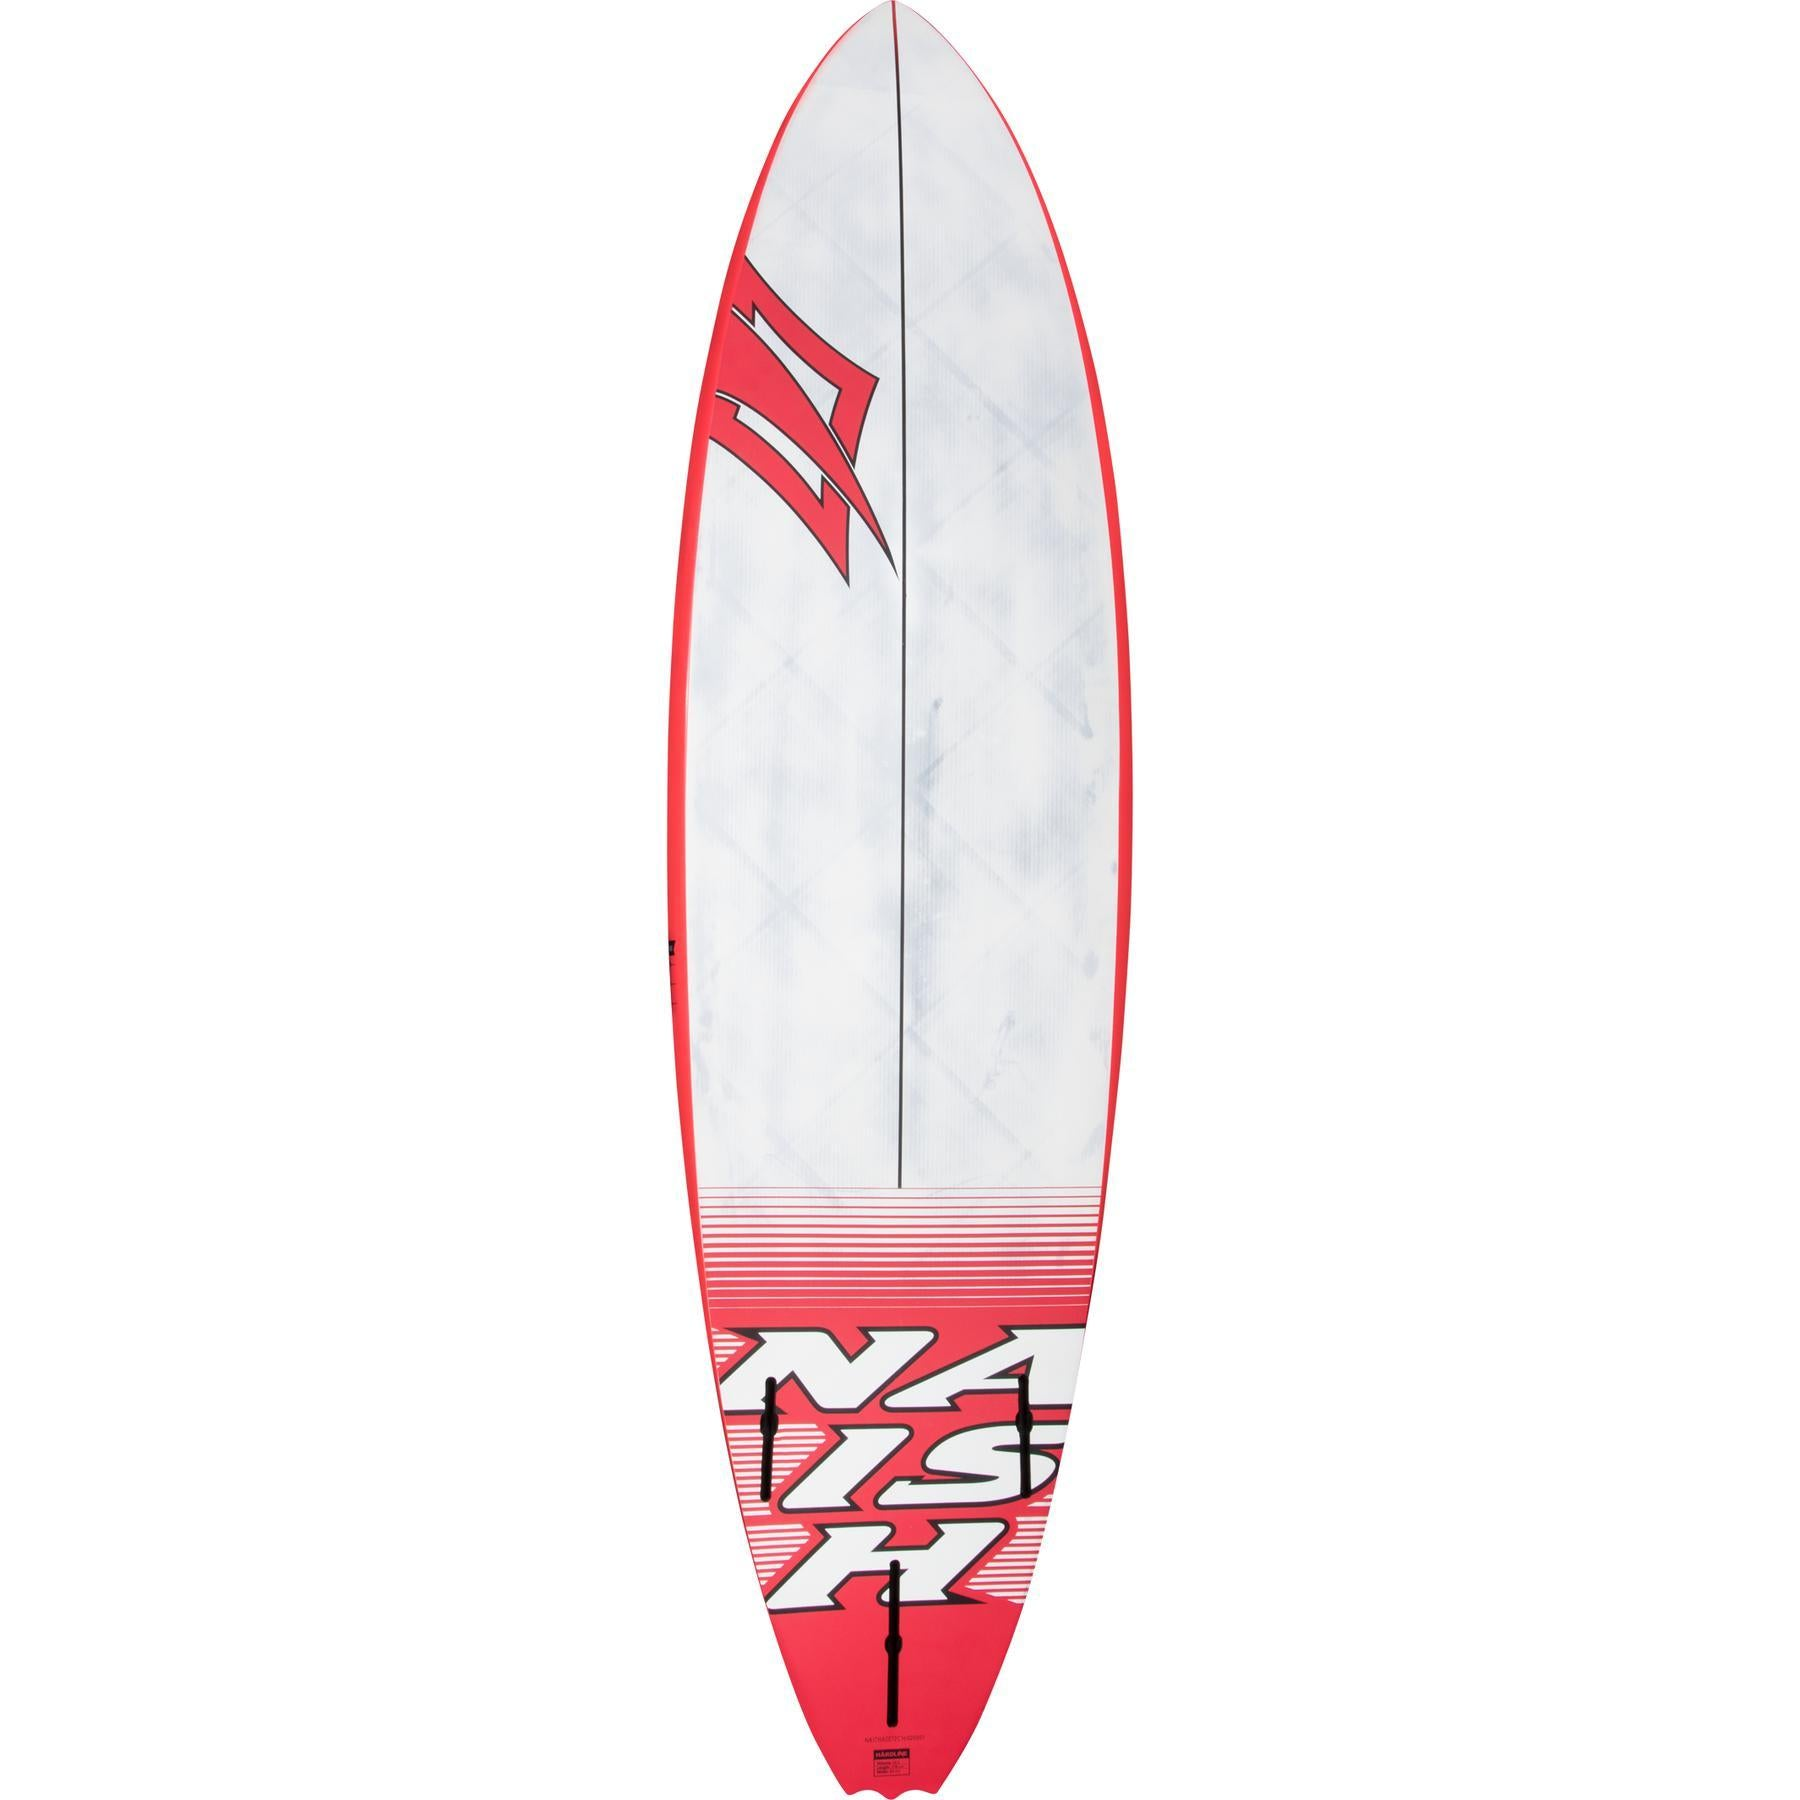 2017 Naish Hardline Carbon Pro Windsurf Board-Big Winds